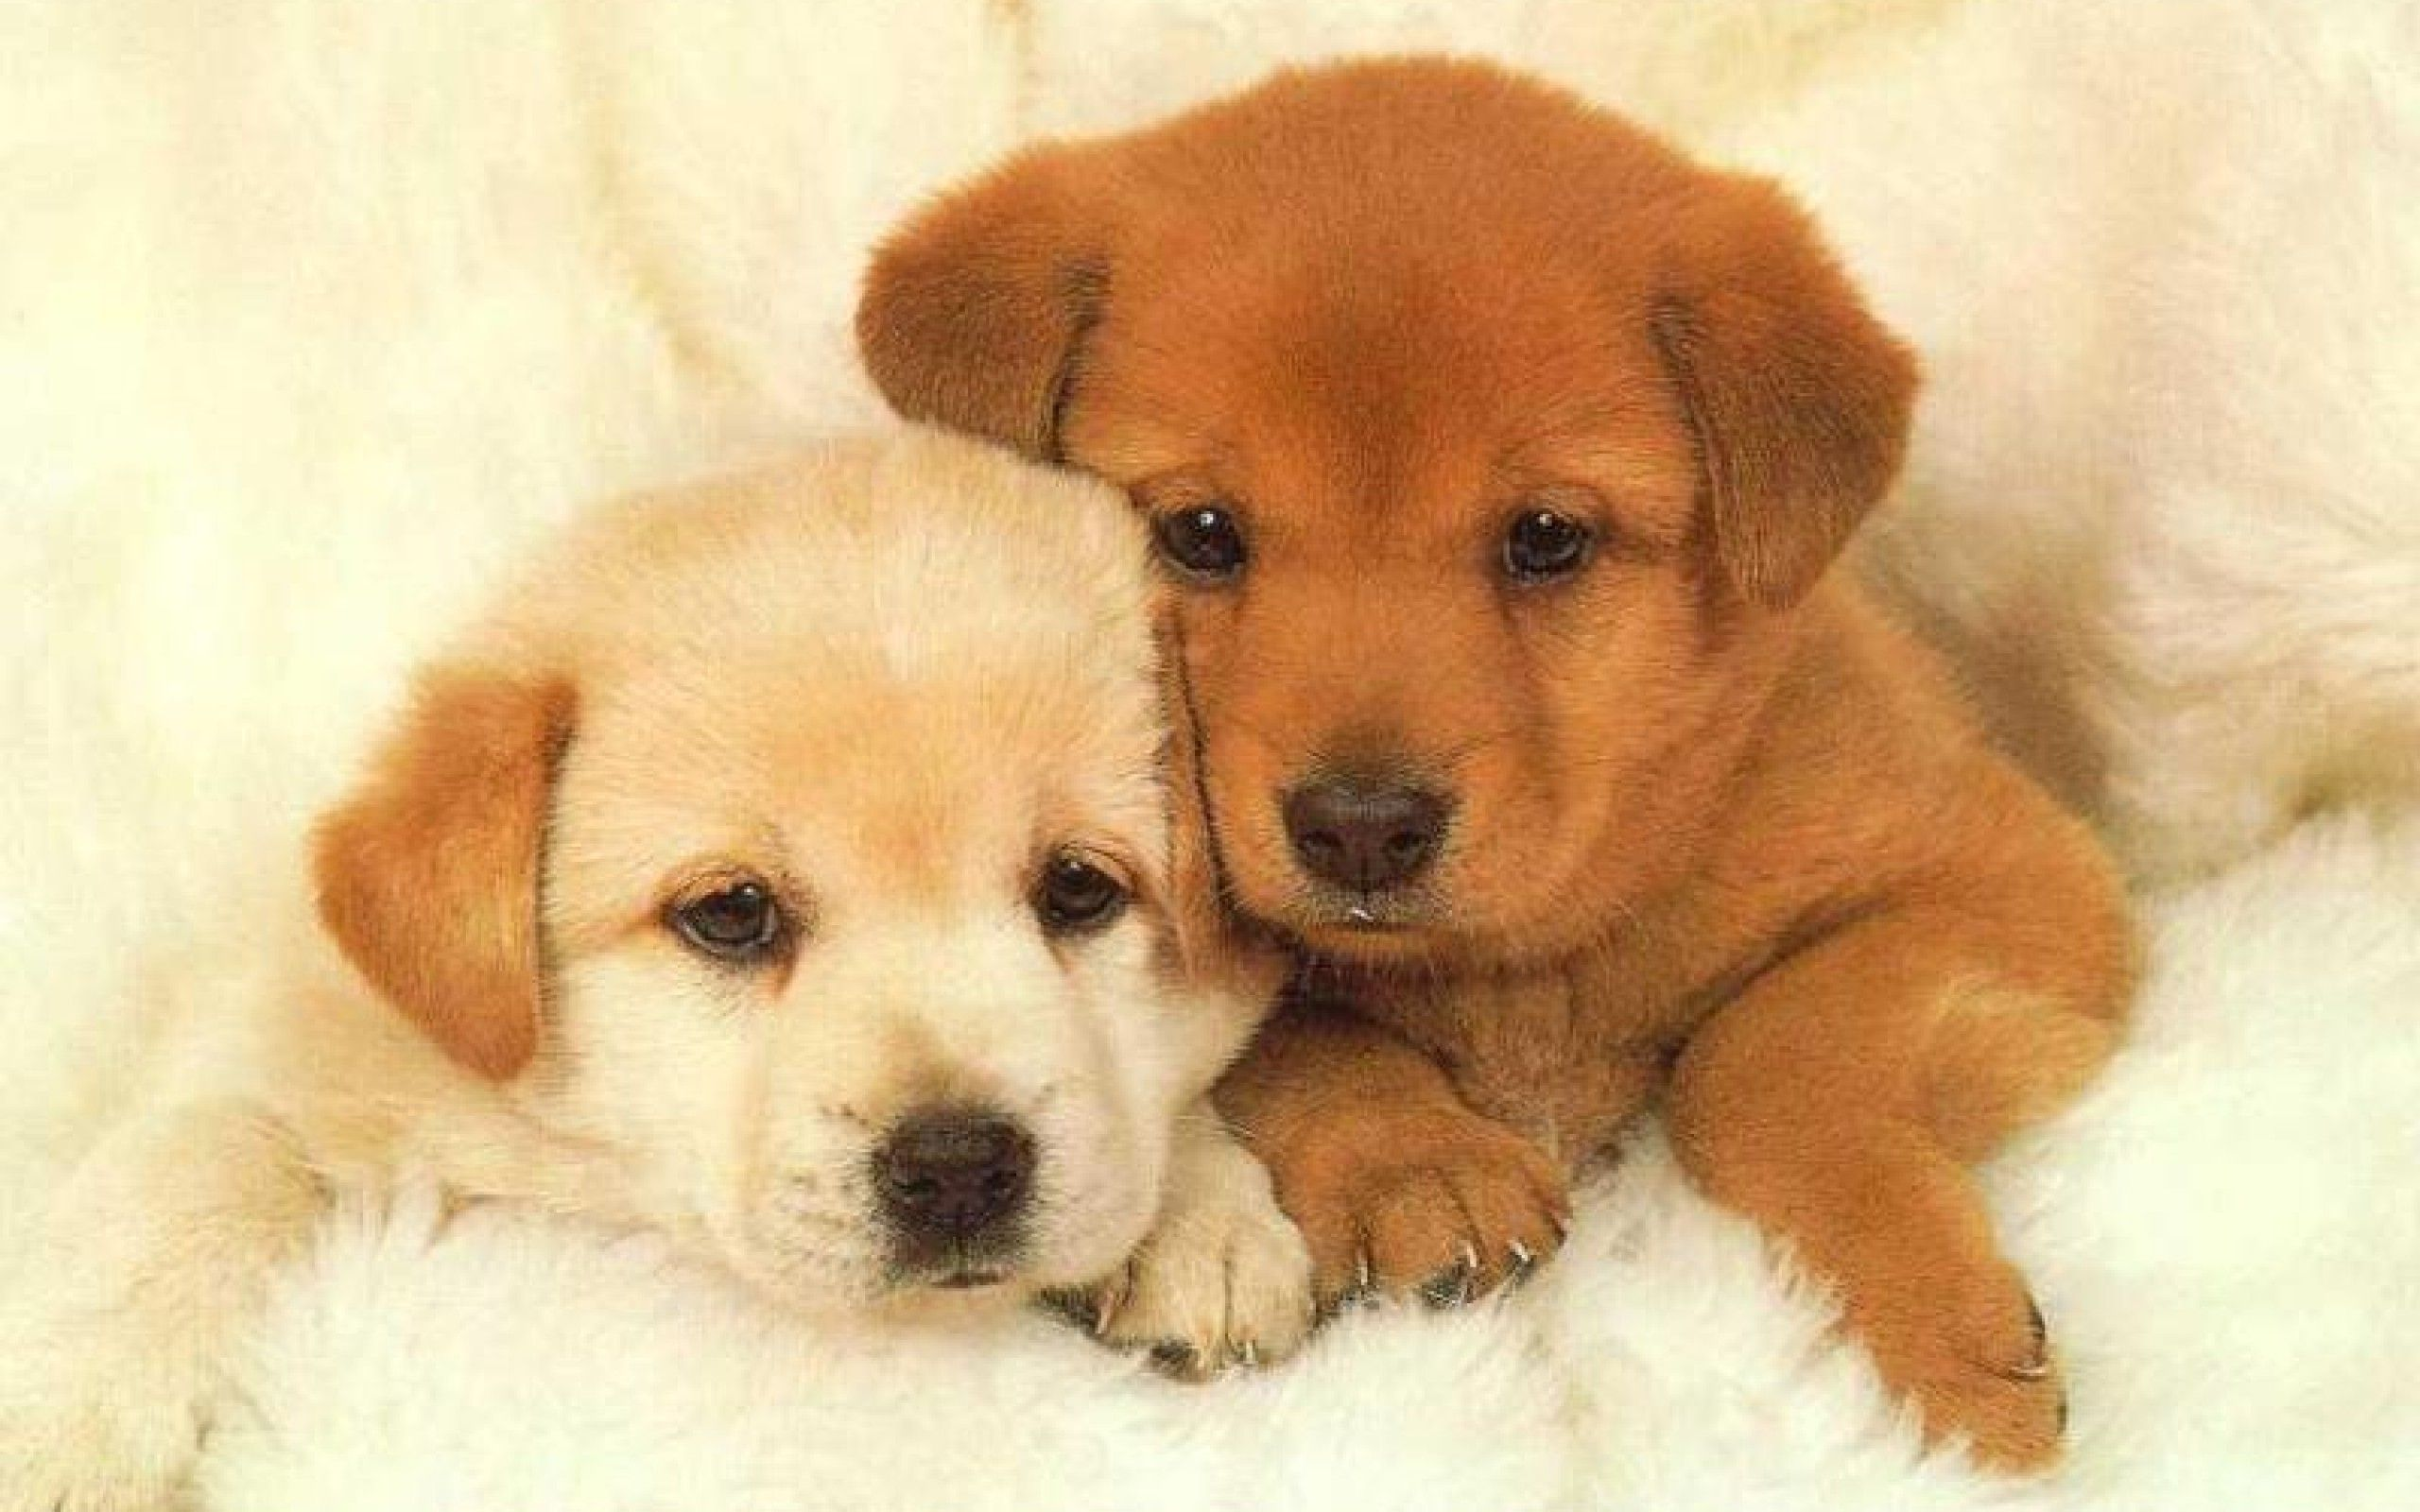 Cute Dogs And Puppies Wallpaper Posted By Zoey Johnson